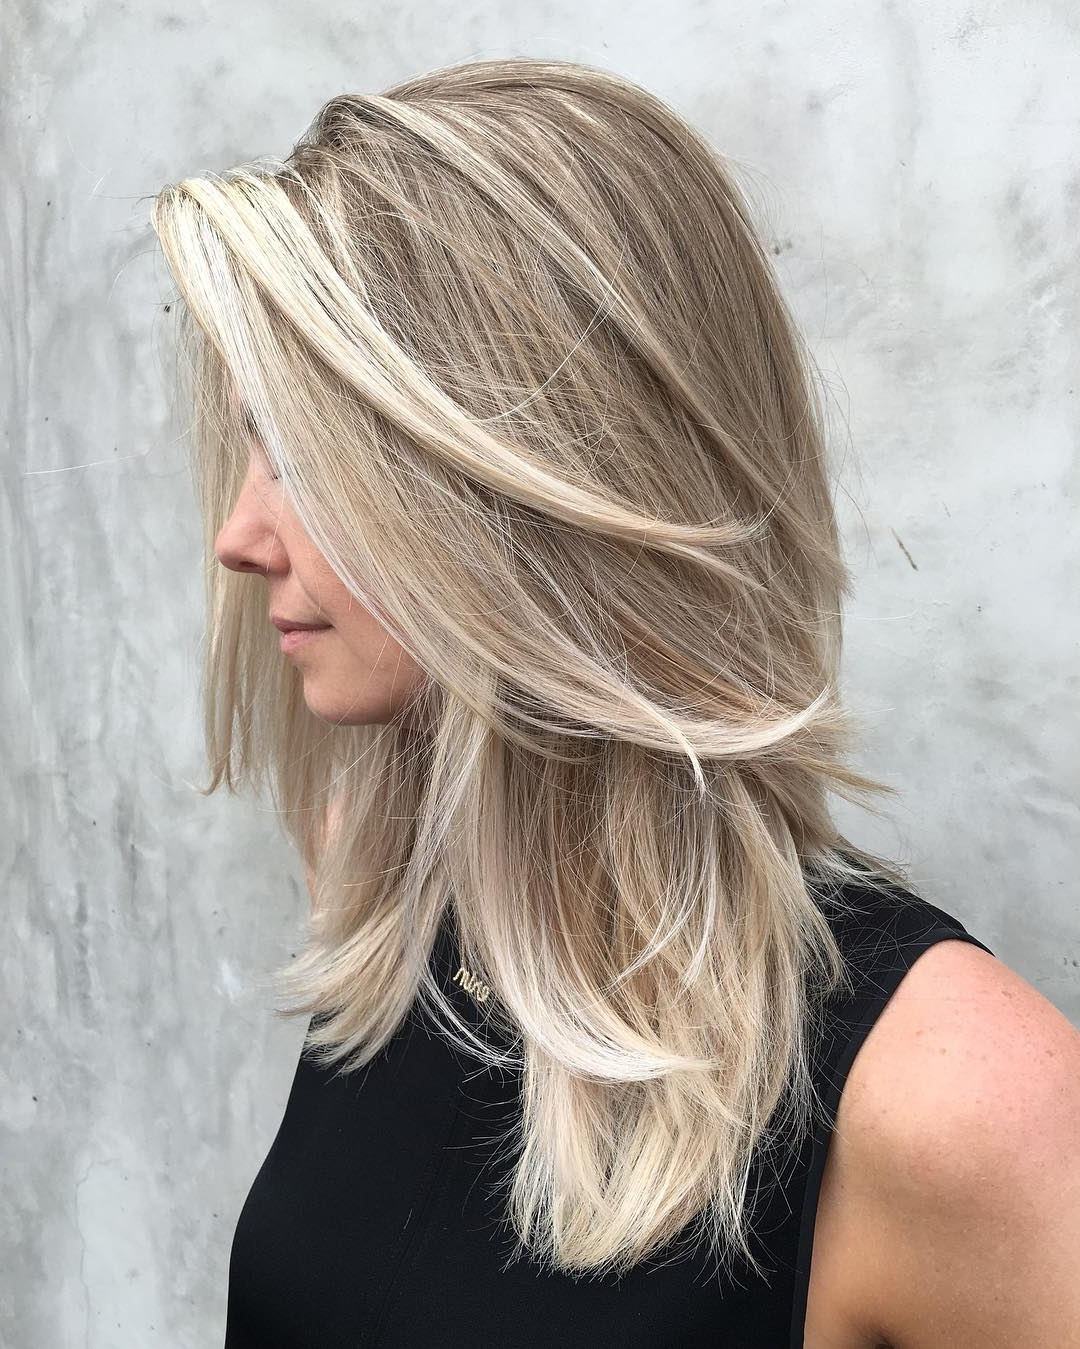 20 Beautiful Blonde Hairstyles To Play Around With Within Most Current Dark Dishwater Blonde Hairstyles (View 1 of 20)